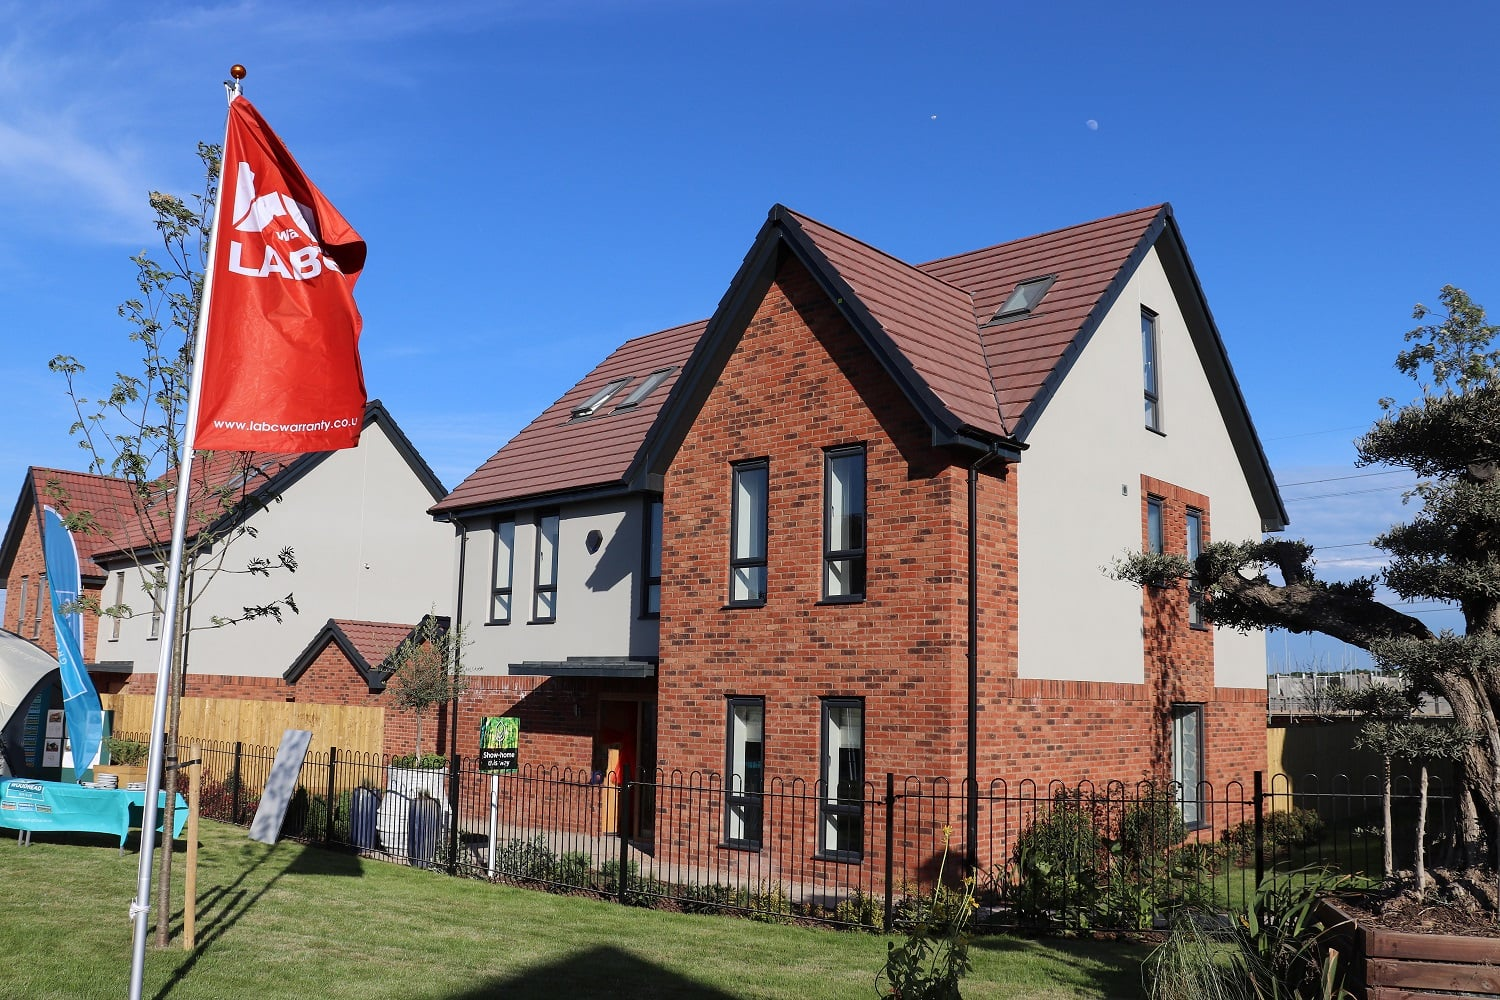 Rufford Pastures in Edwinstowe has been recognised as the best residential development of its type in the region by the Local Authority Building Control